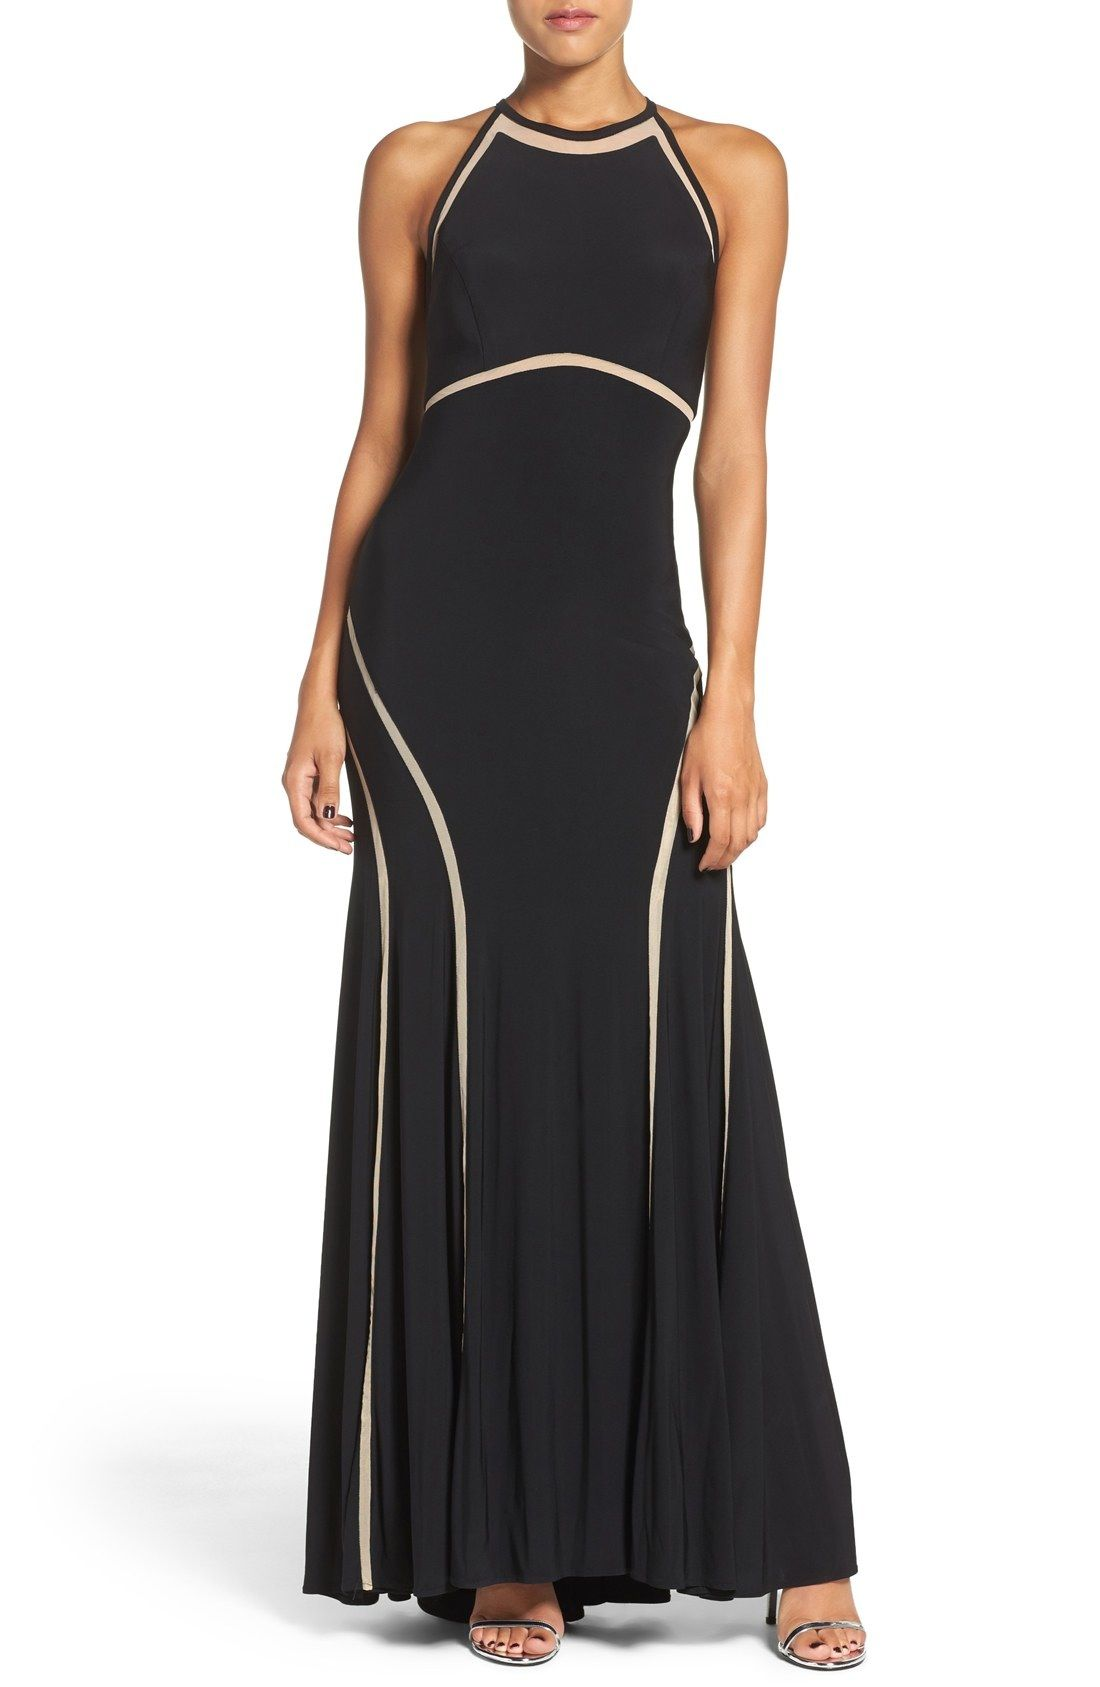 Xscape illusion inset jersey gown available at nordstrom dress to